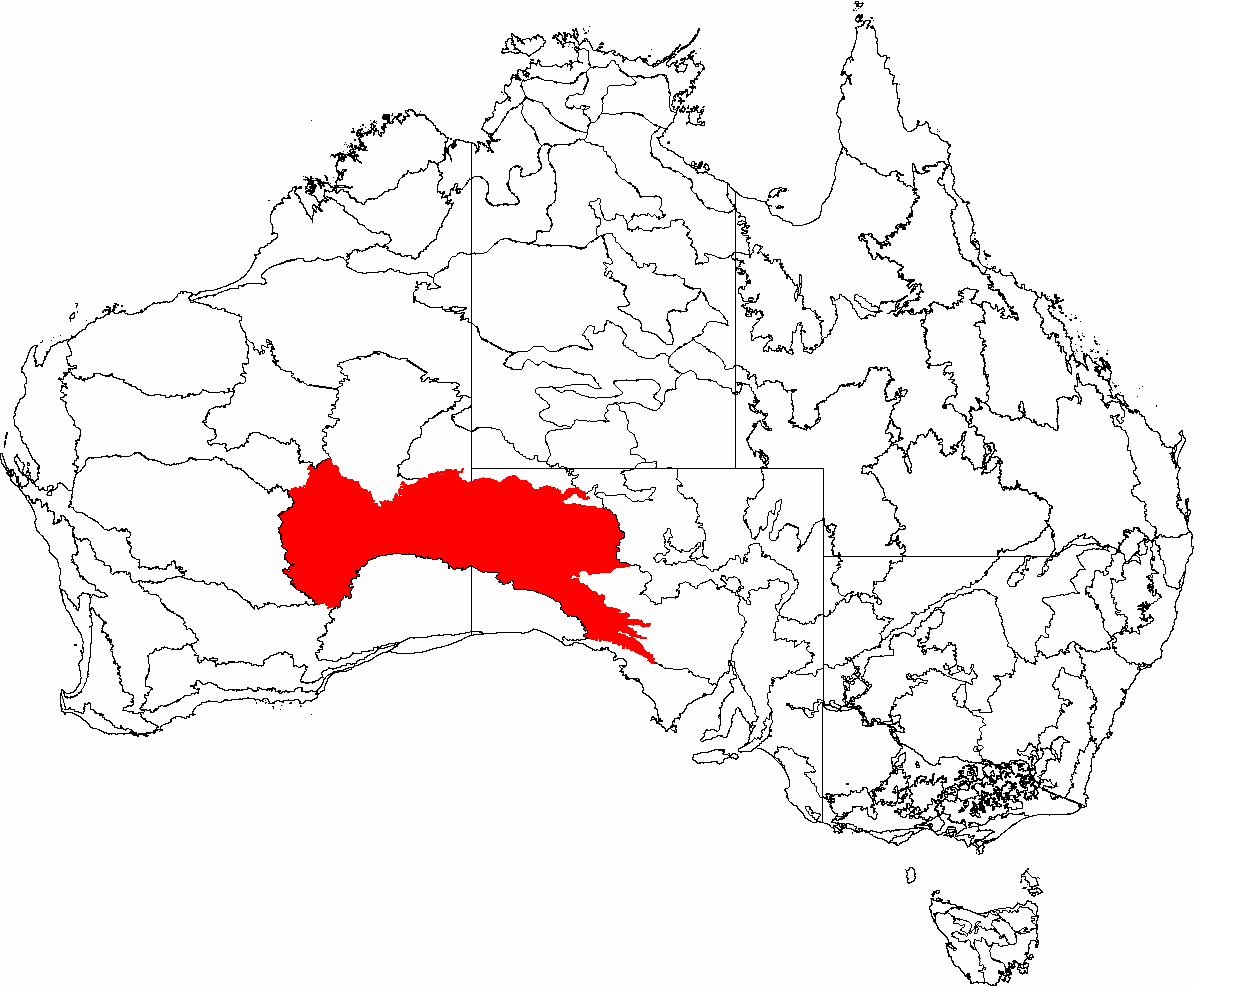 File:IBRA 6.1 Great Victoria Desert.png - Wikipedia, the free ...